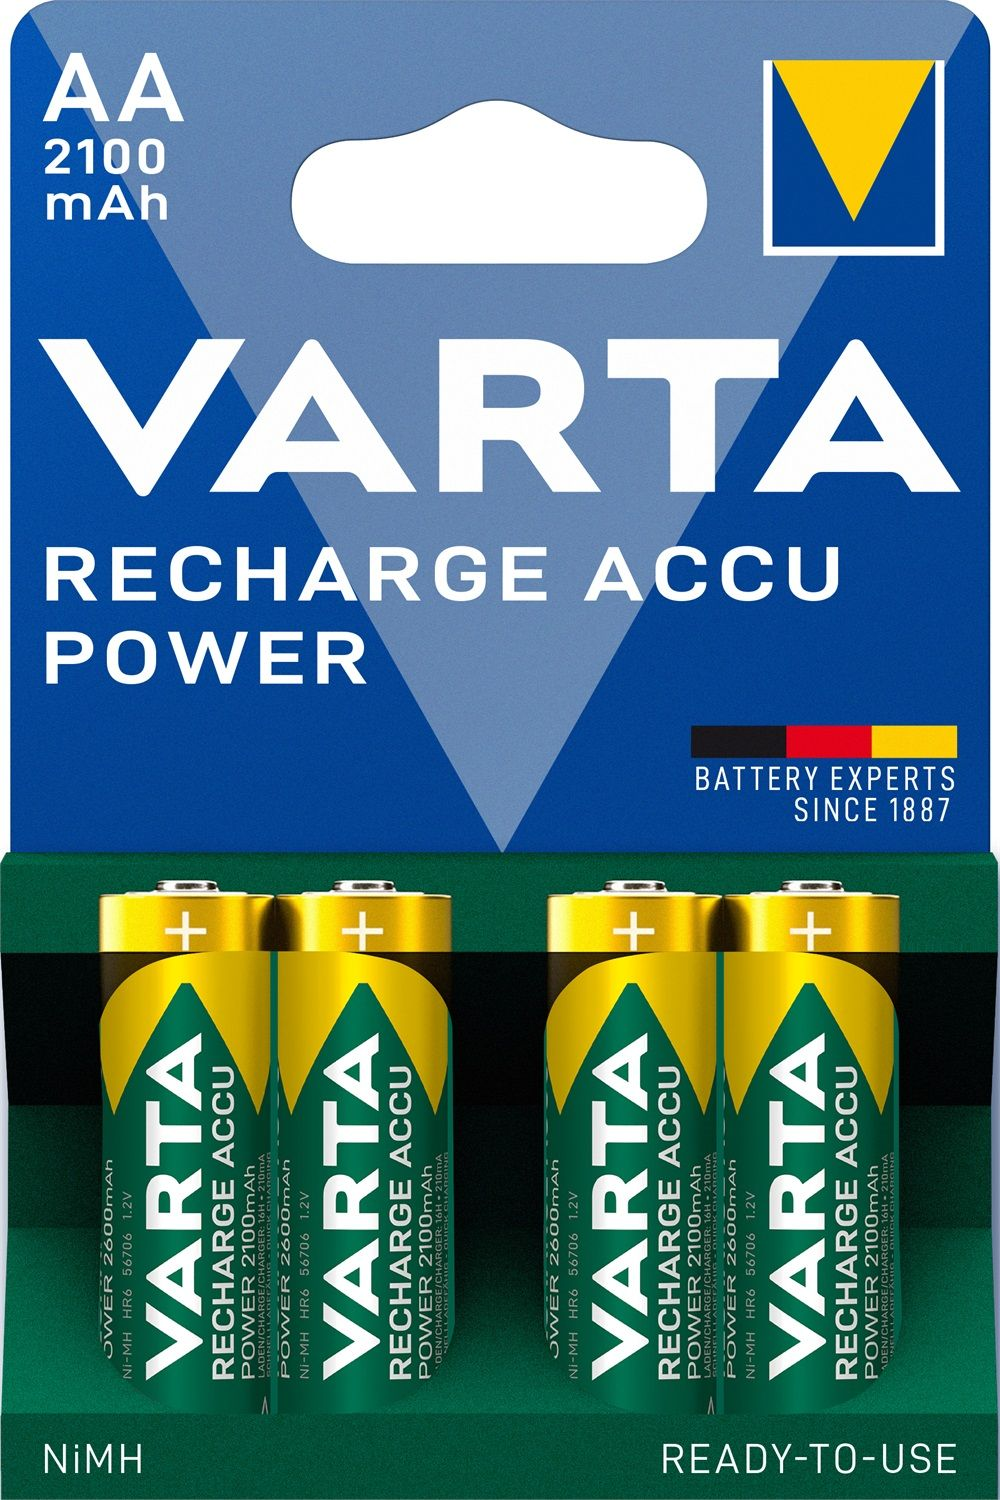 Varta Recharge Accu Power AA 2100 mAh (4 pz)